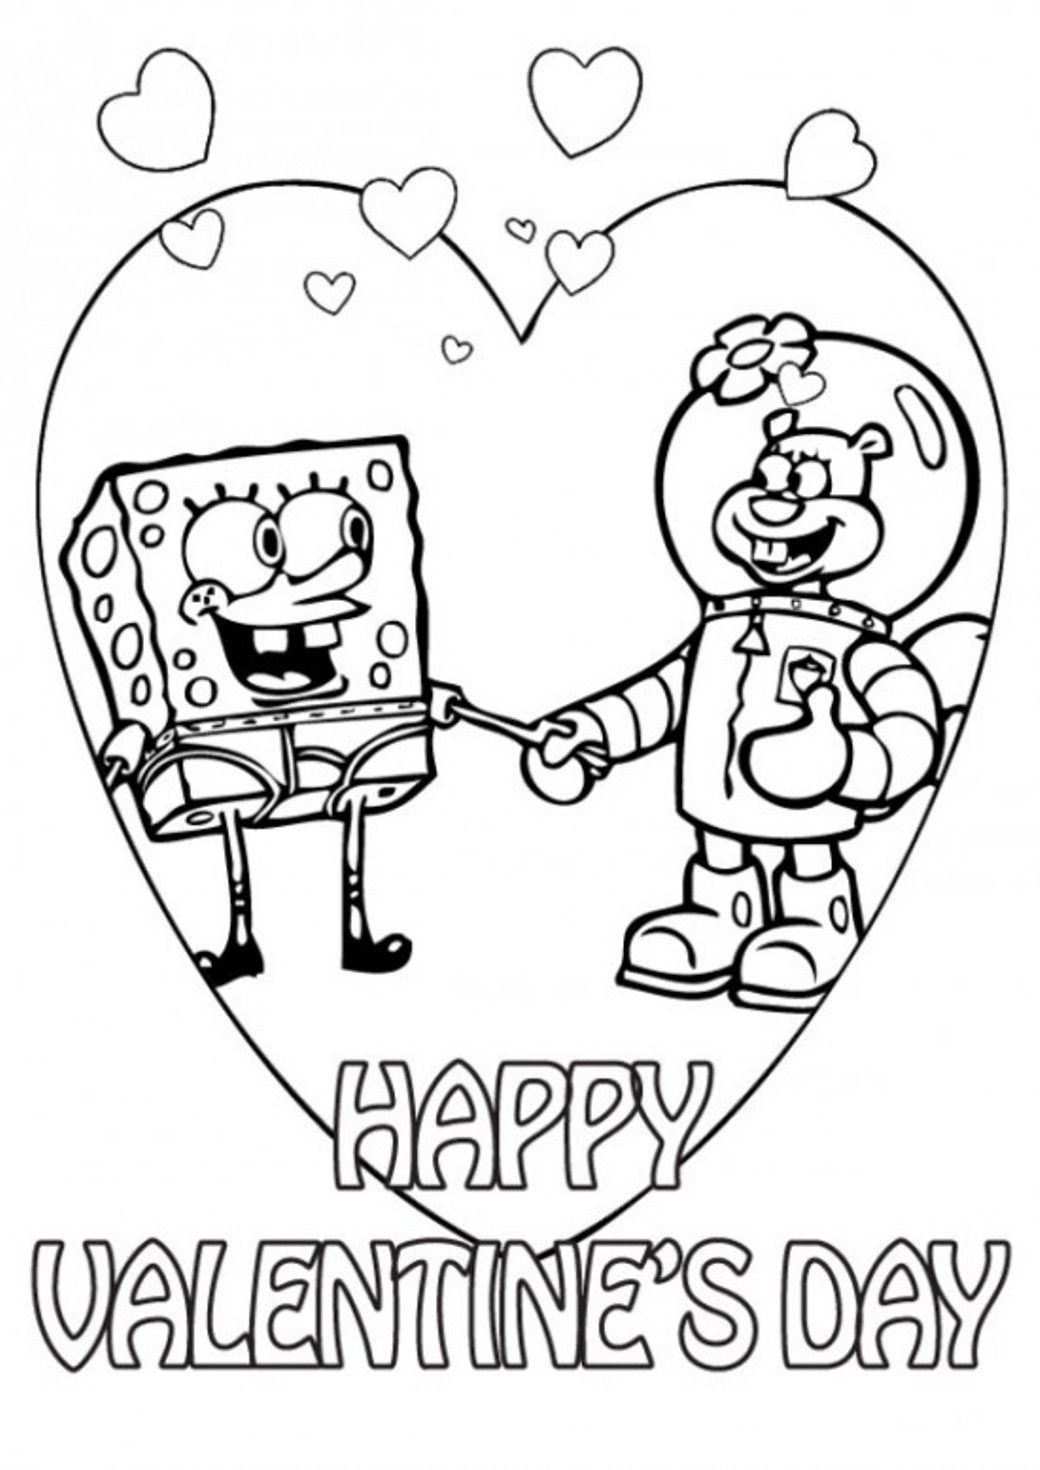 Spongebob And Sandy Valentine Coloring Pages | Valentine Coloring ...